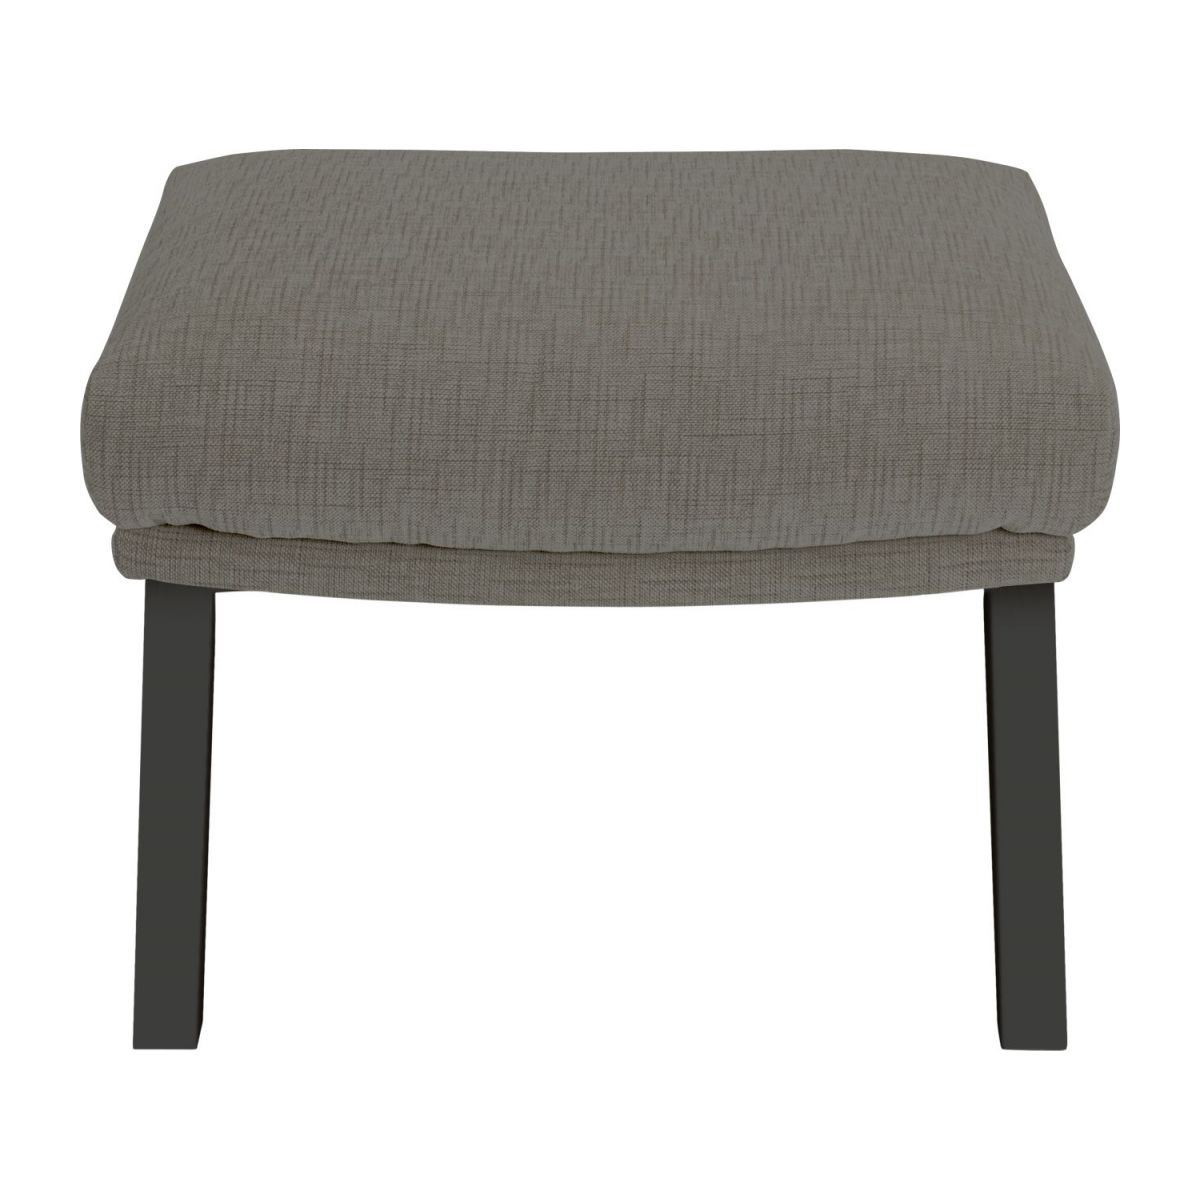 Footstool in Ancio fabric, river rock with dark legs n°2